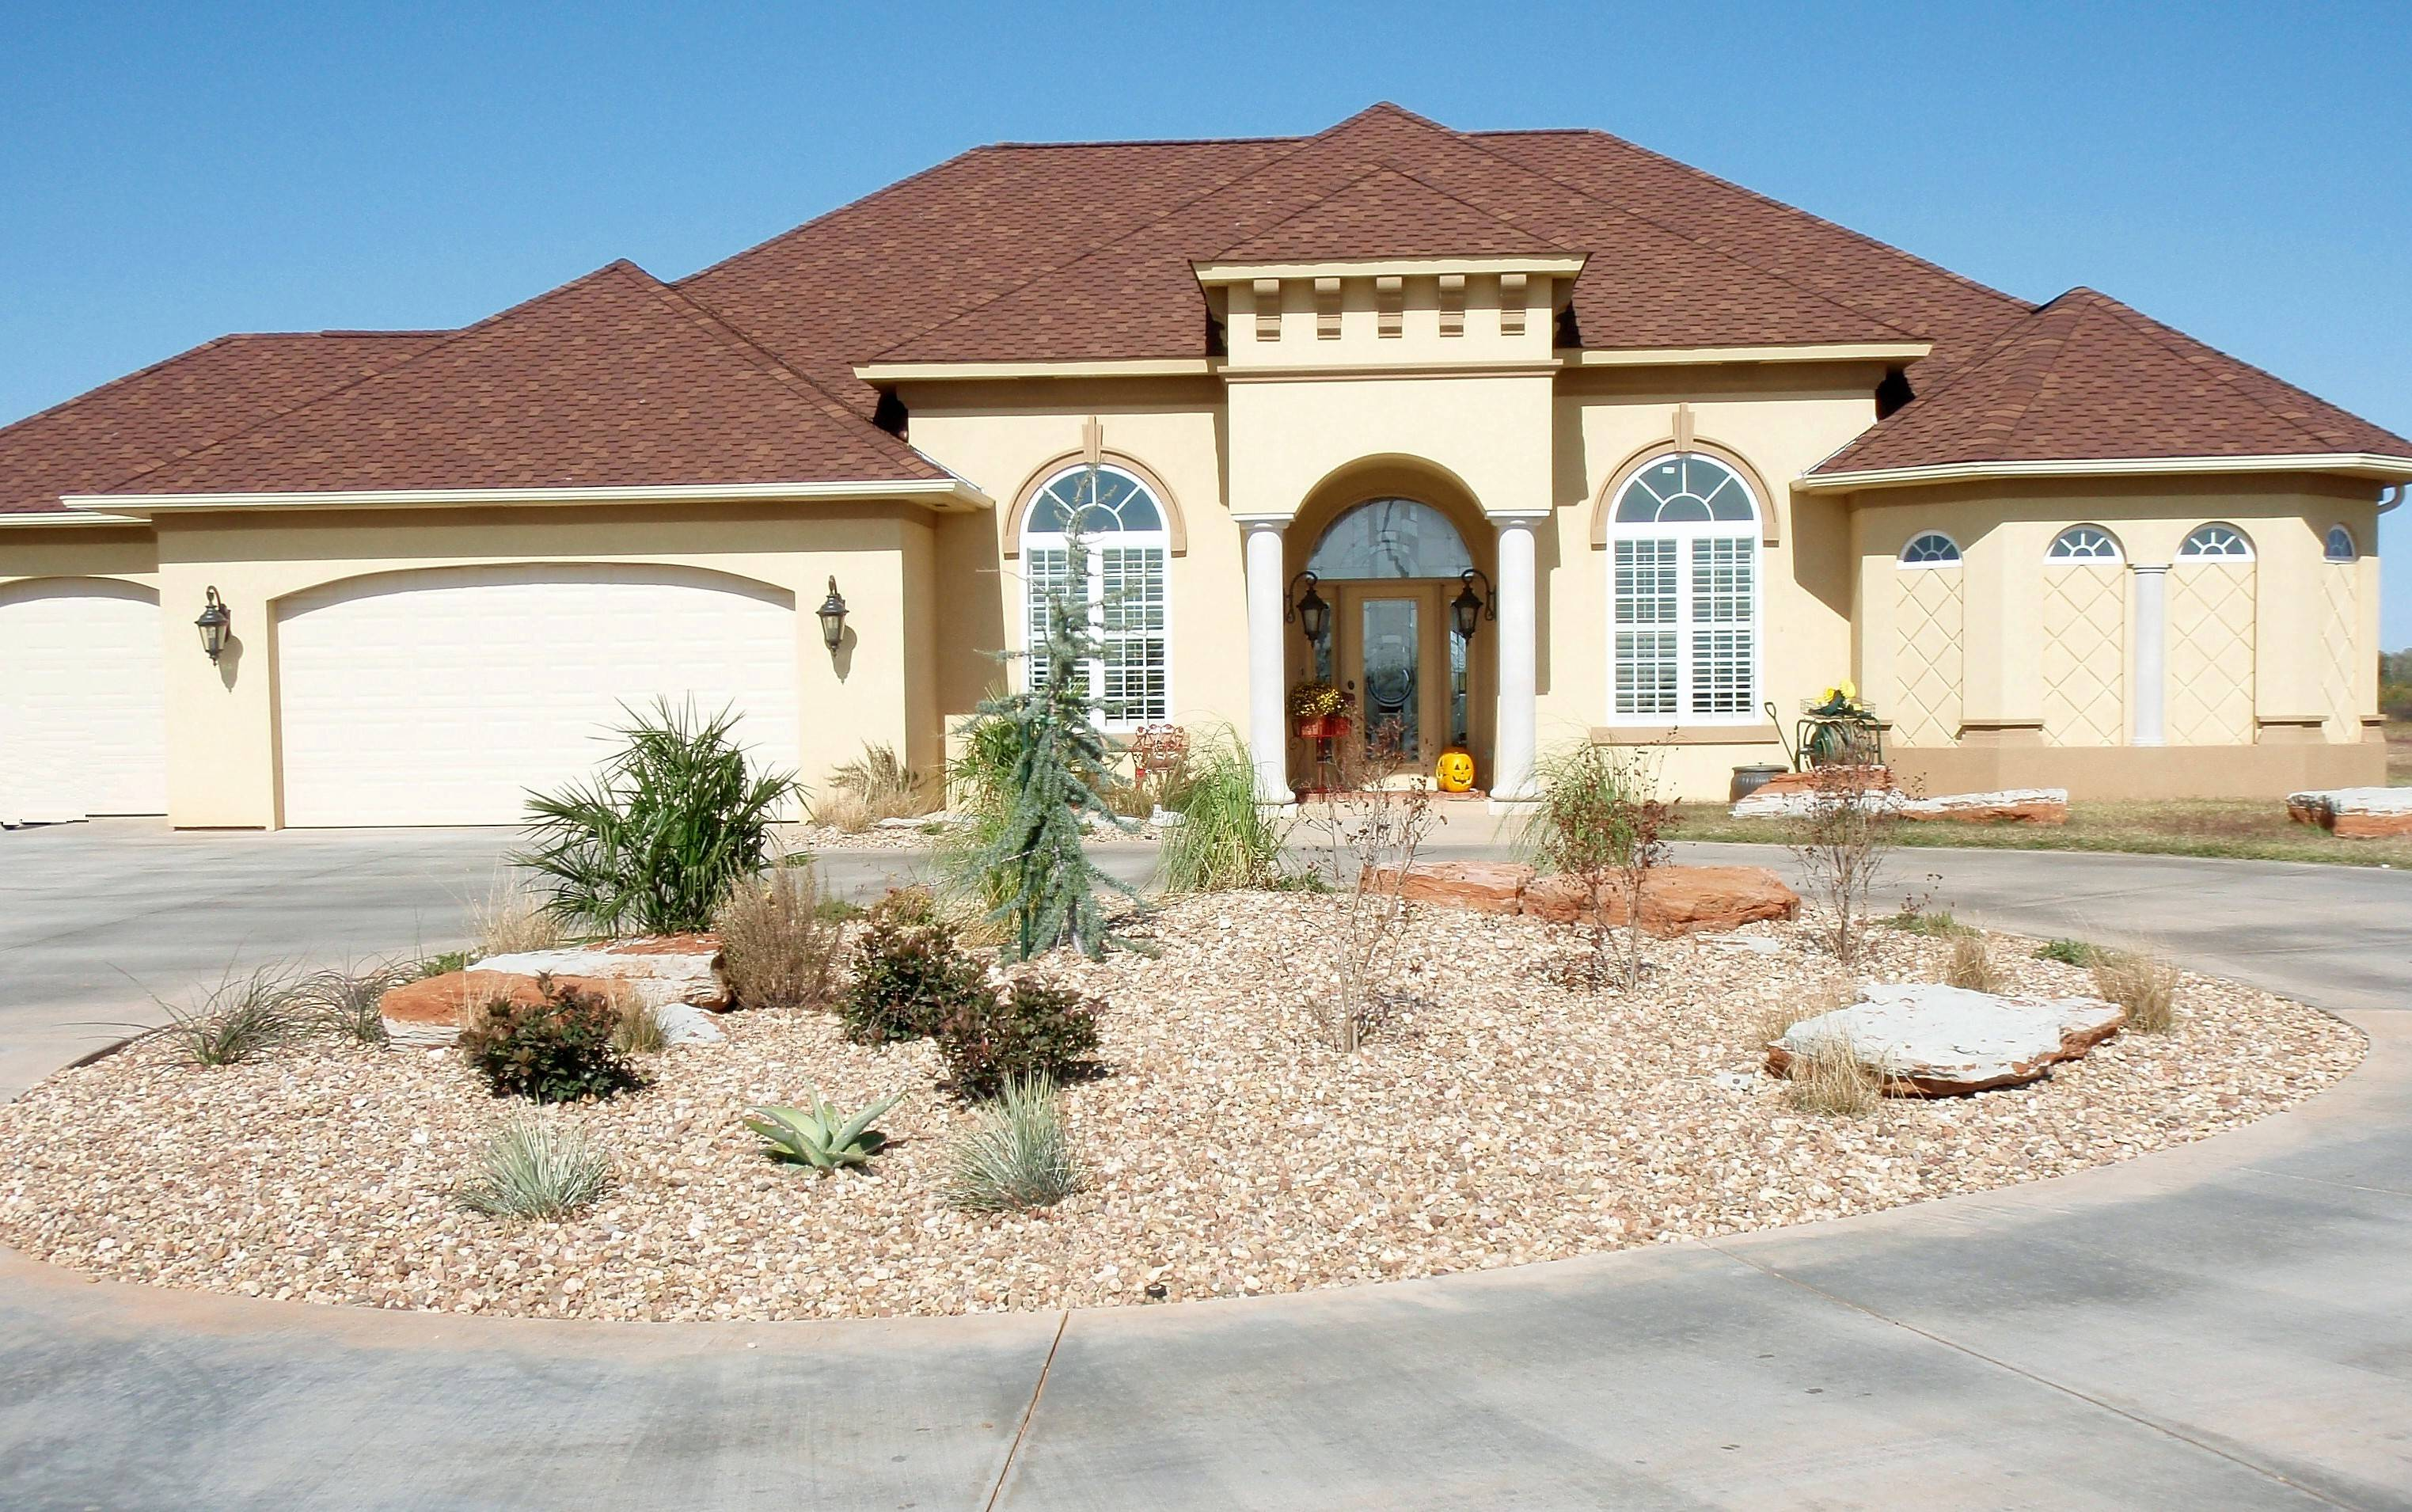 The Sater Design Collection stunning sater design group ideas house plans - house plans